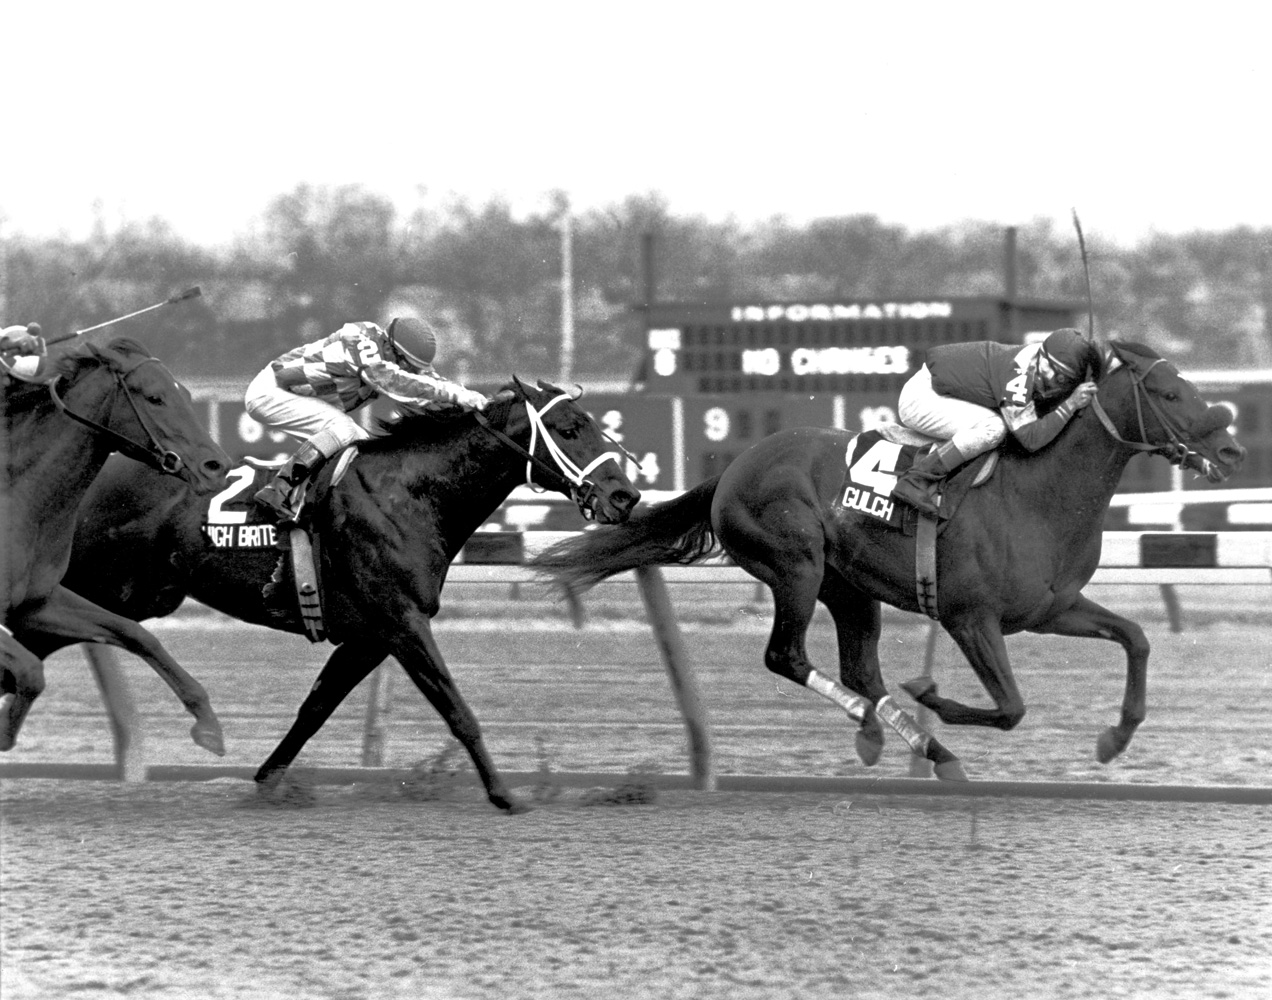 Jose Santos and Gulch winning the 1987 Bay Shore at Aqueduct (NYRA)